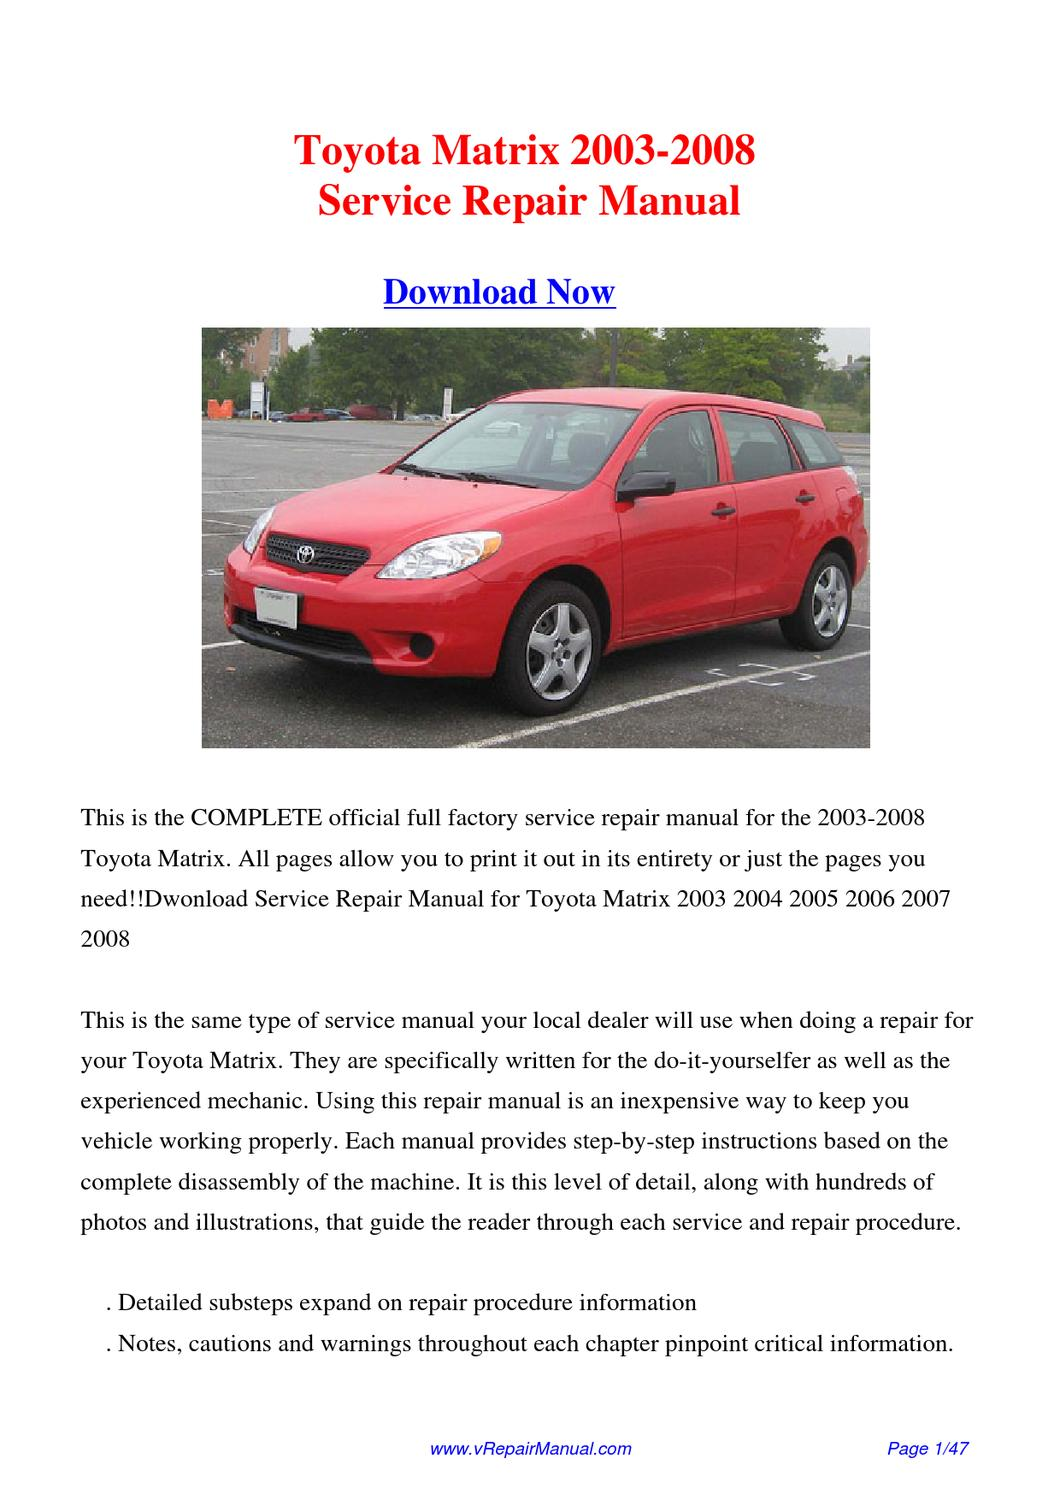 service manual pdf 2008 toyota matrix workshop manuals. Black Bedroom Furniture Sets. Home Design Ideas